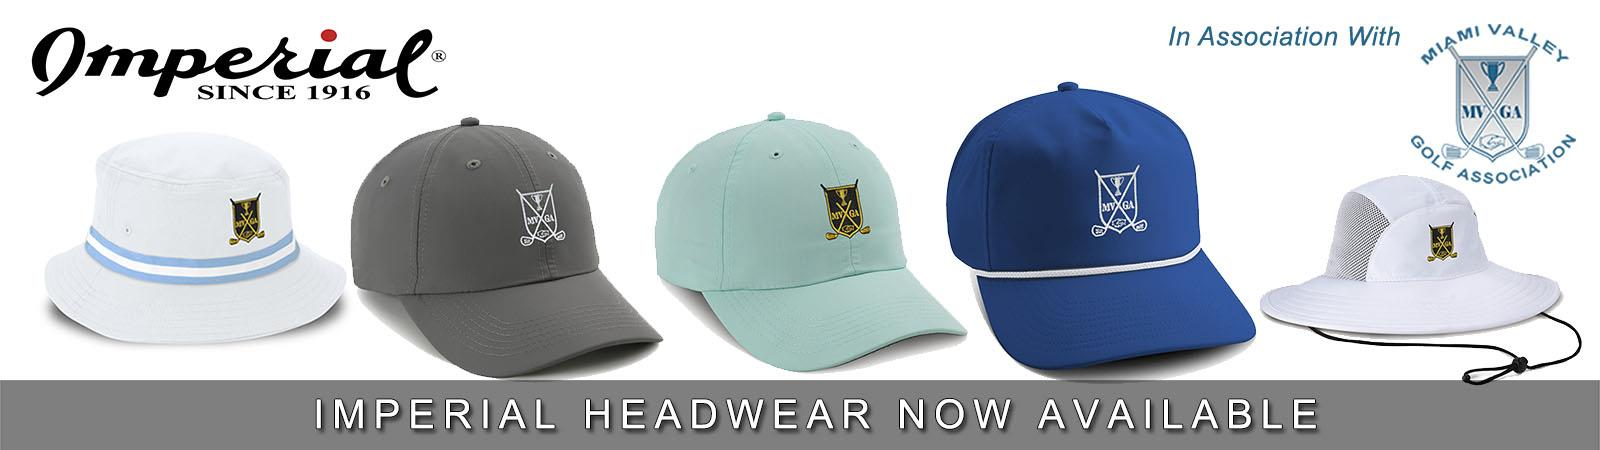 Imperial_Headwear_Now_Available